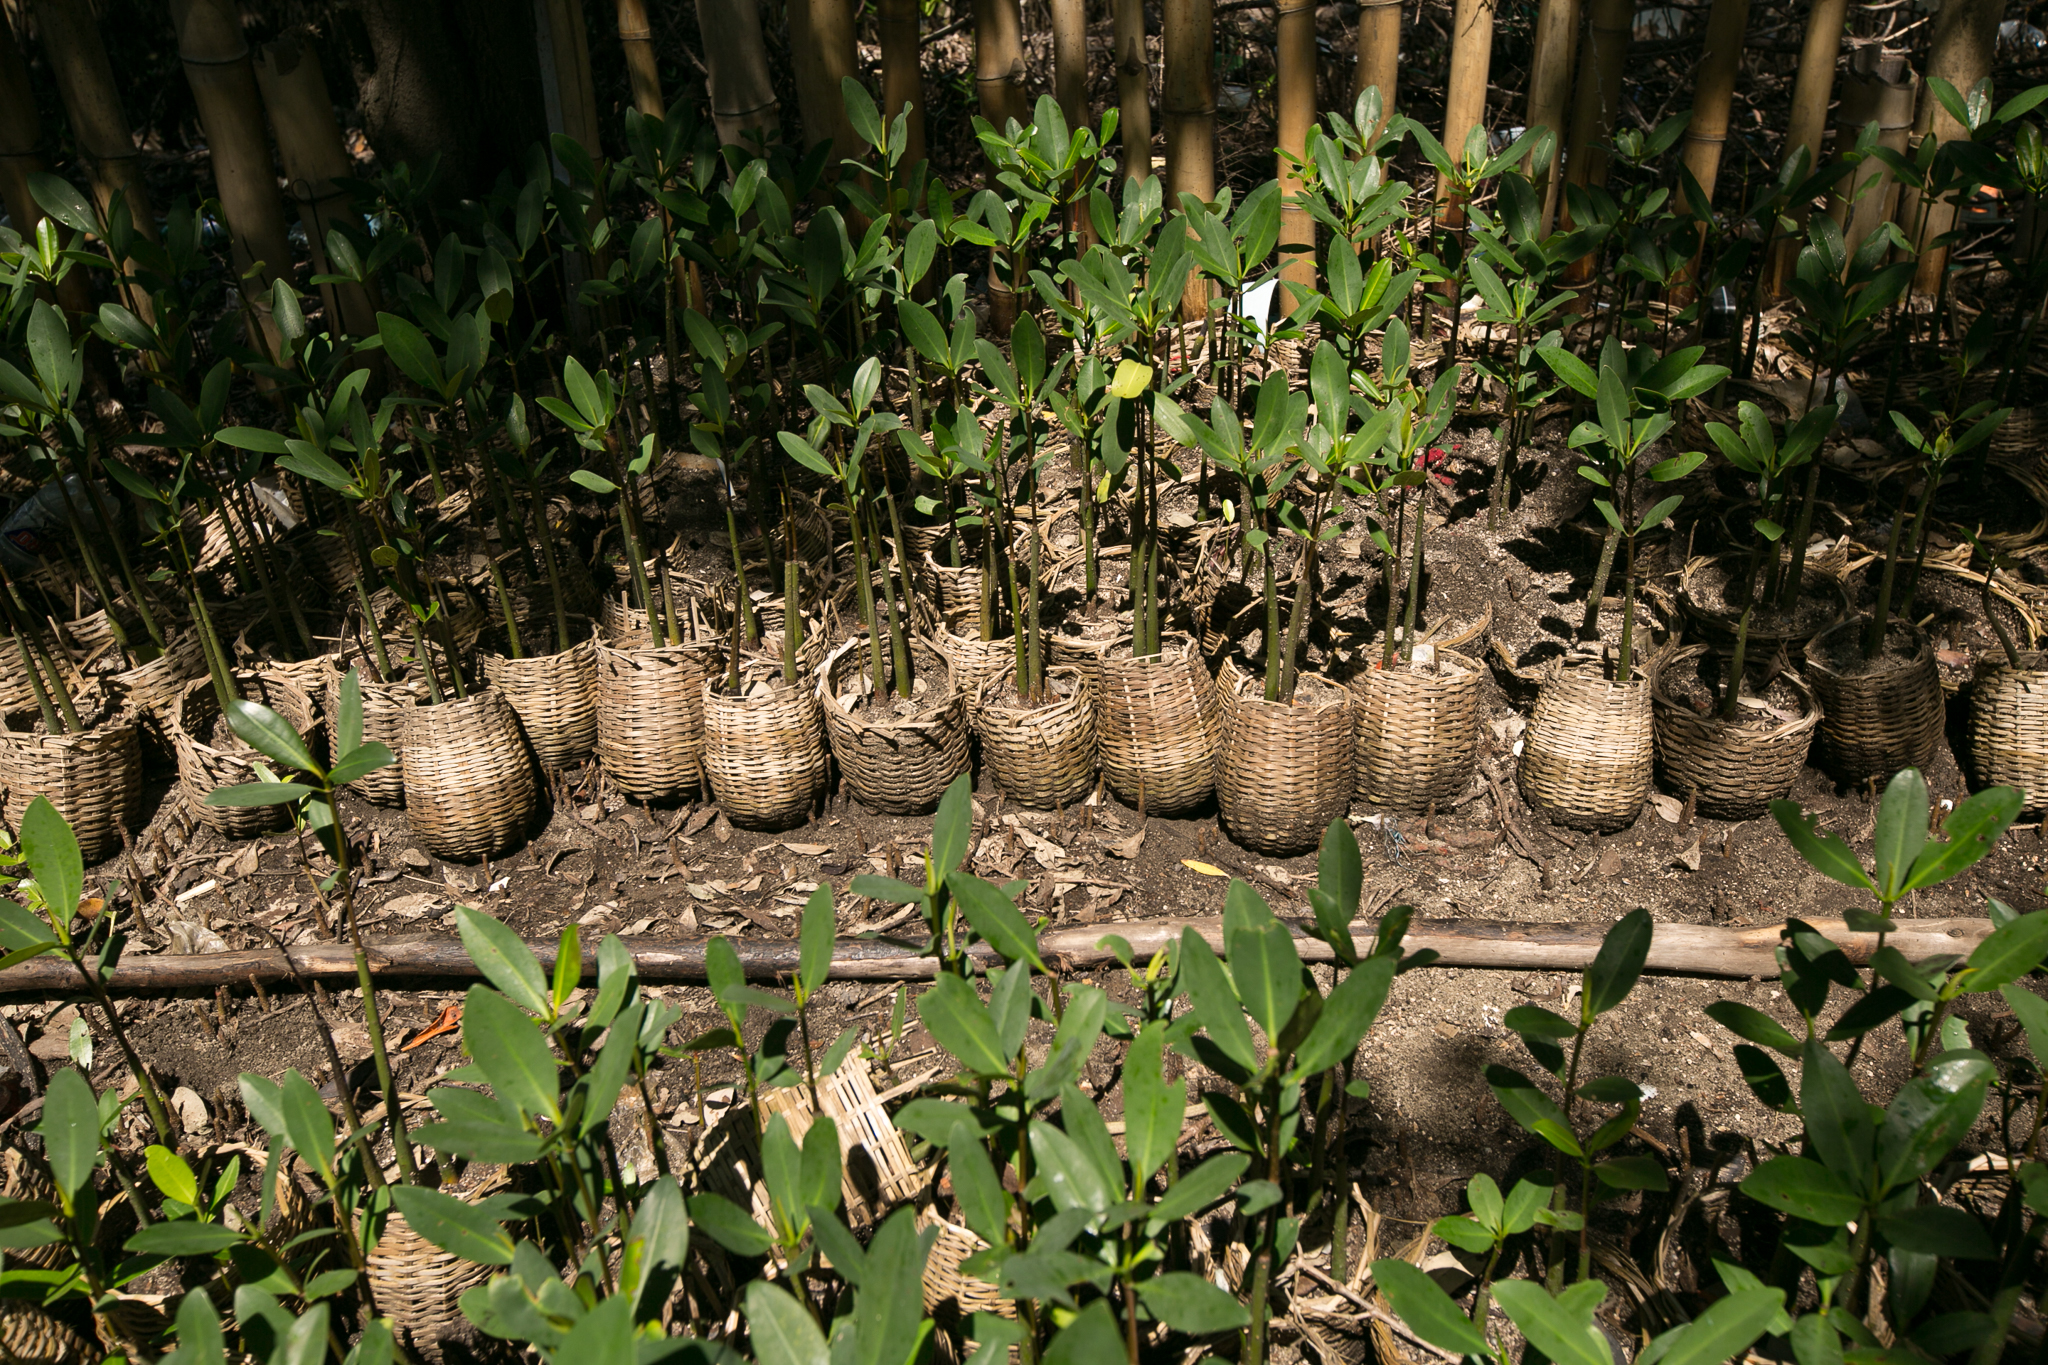 Wiener's team grows mangrove seedlings in biodegradable baskets, allowing the mature seedlings to be planted easily—basket and all. ©2016 Bahare Khodabande.